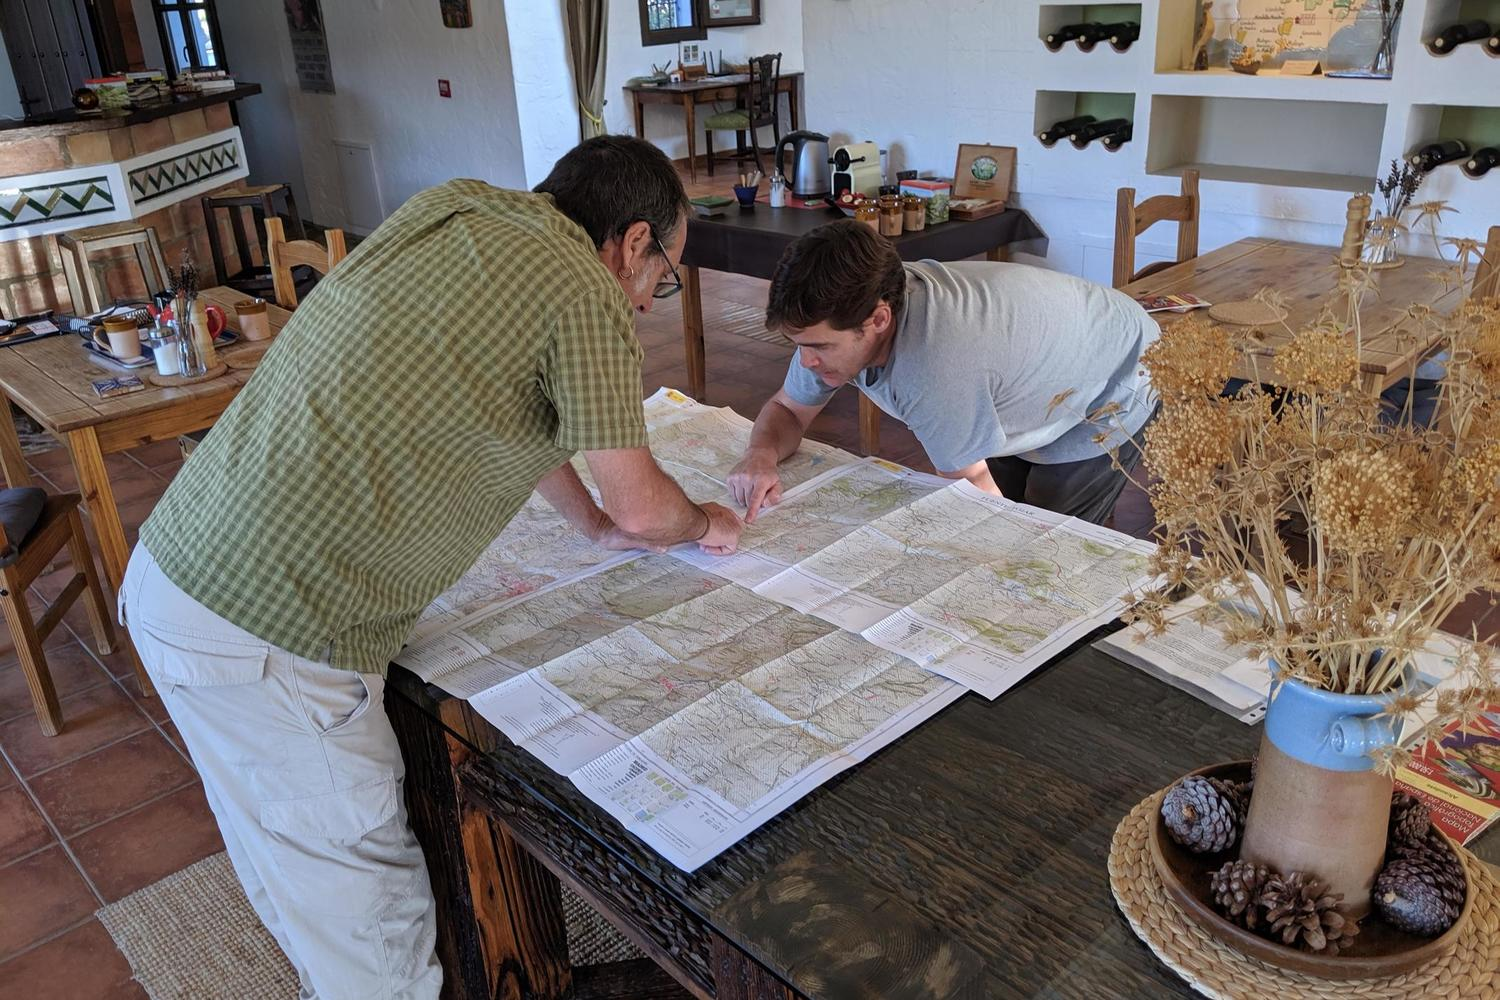 Xabi and Tim poring over the maps